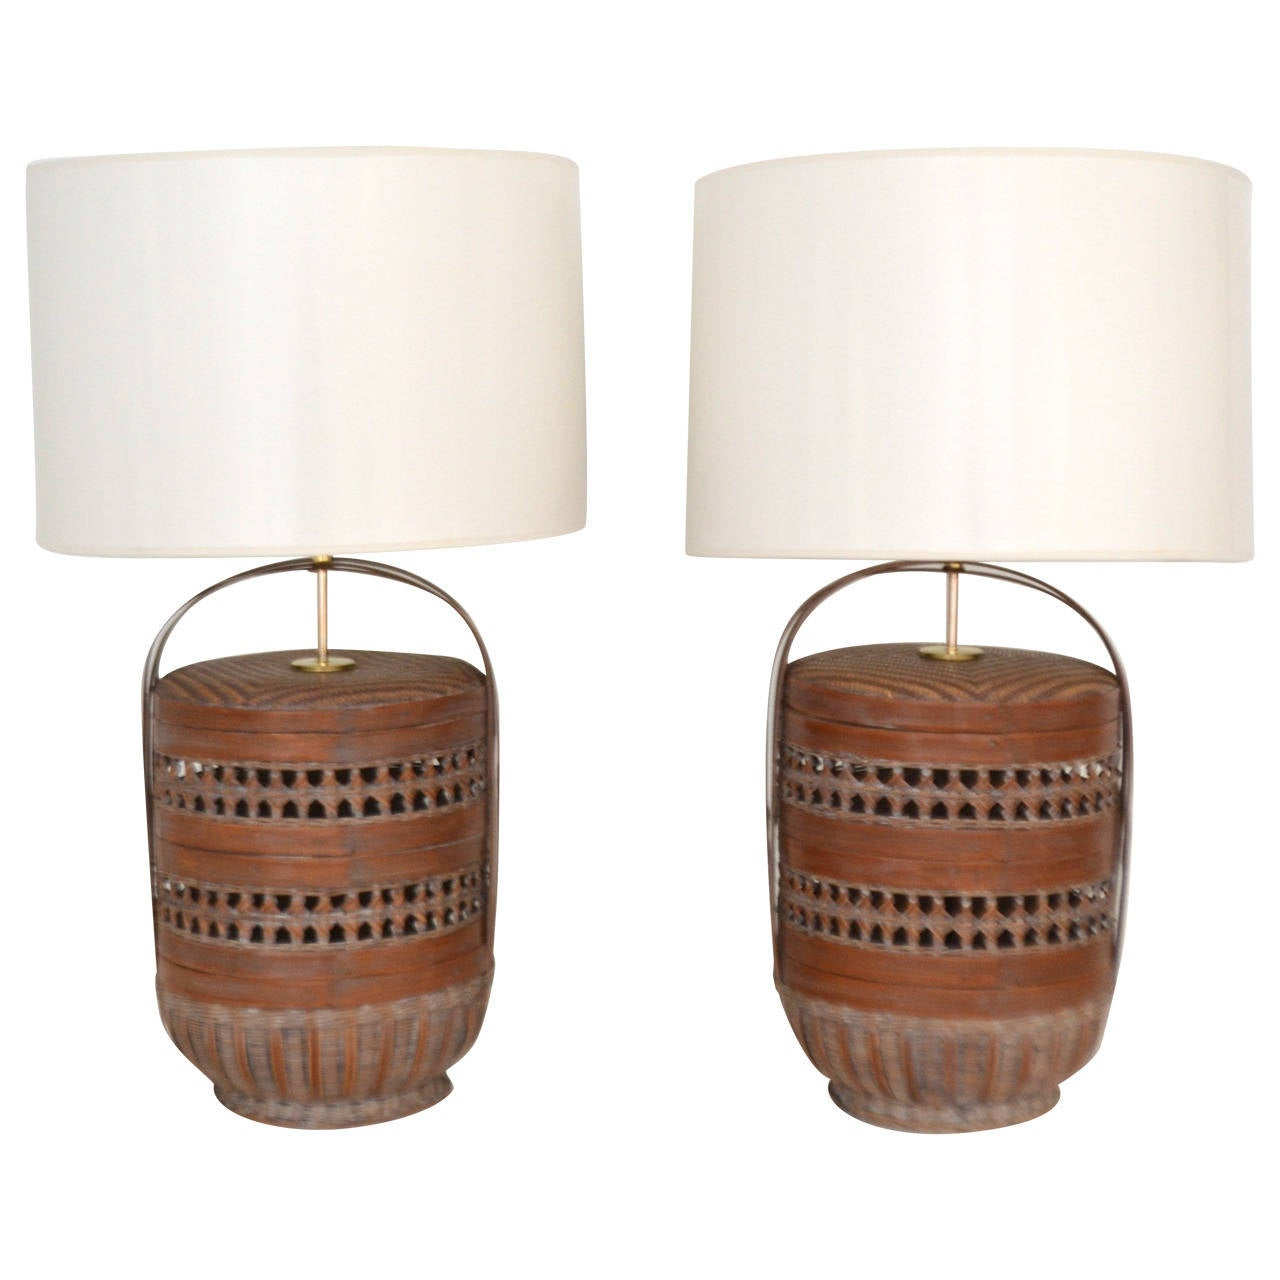 Woven Basket Lamp : Pair of woven reed basket lamps at stdibs